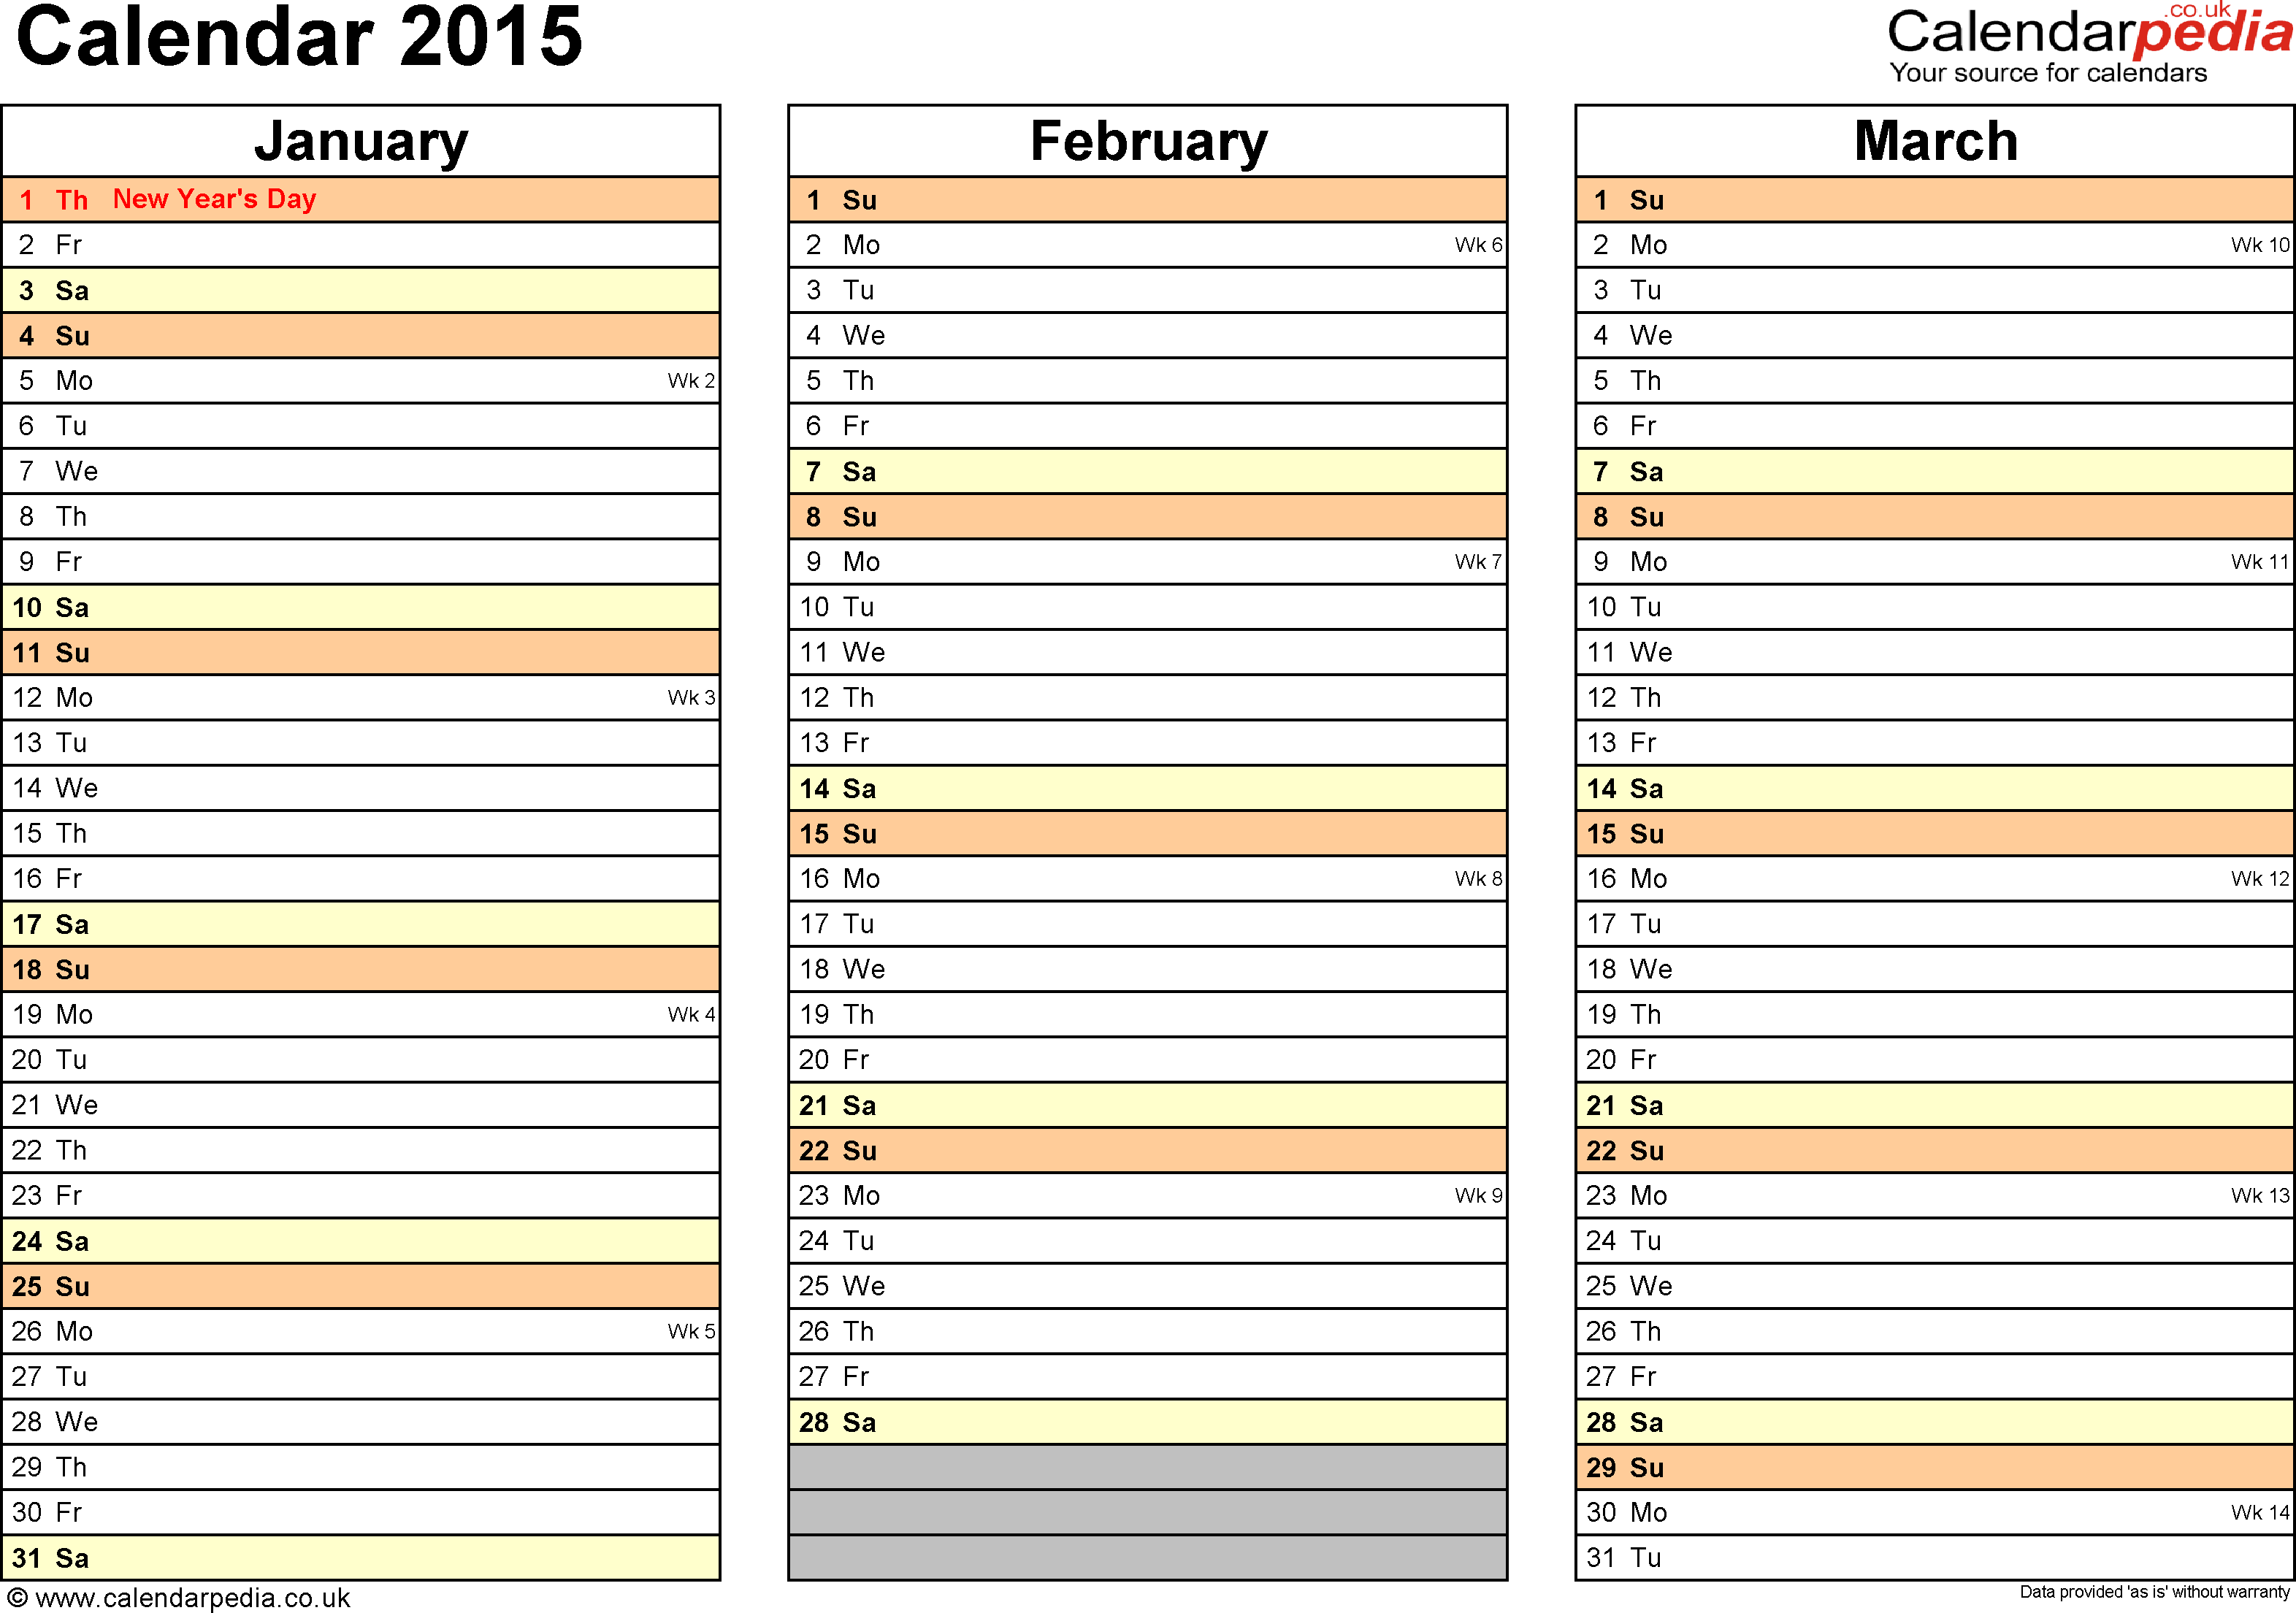 Template 5: Yearly calendar 2015 as PDF template, landscape orientation, 4 pages, months horizontally, days vertically, with UK bank holidays and week numbers